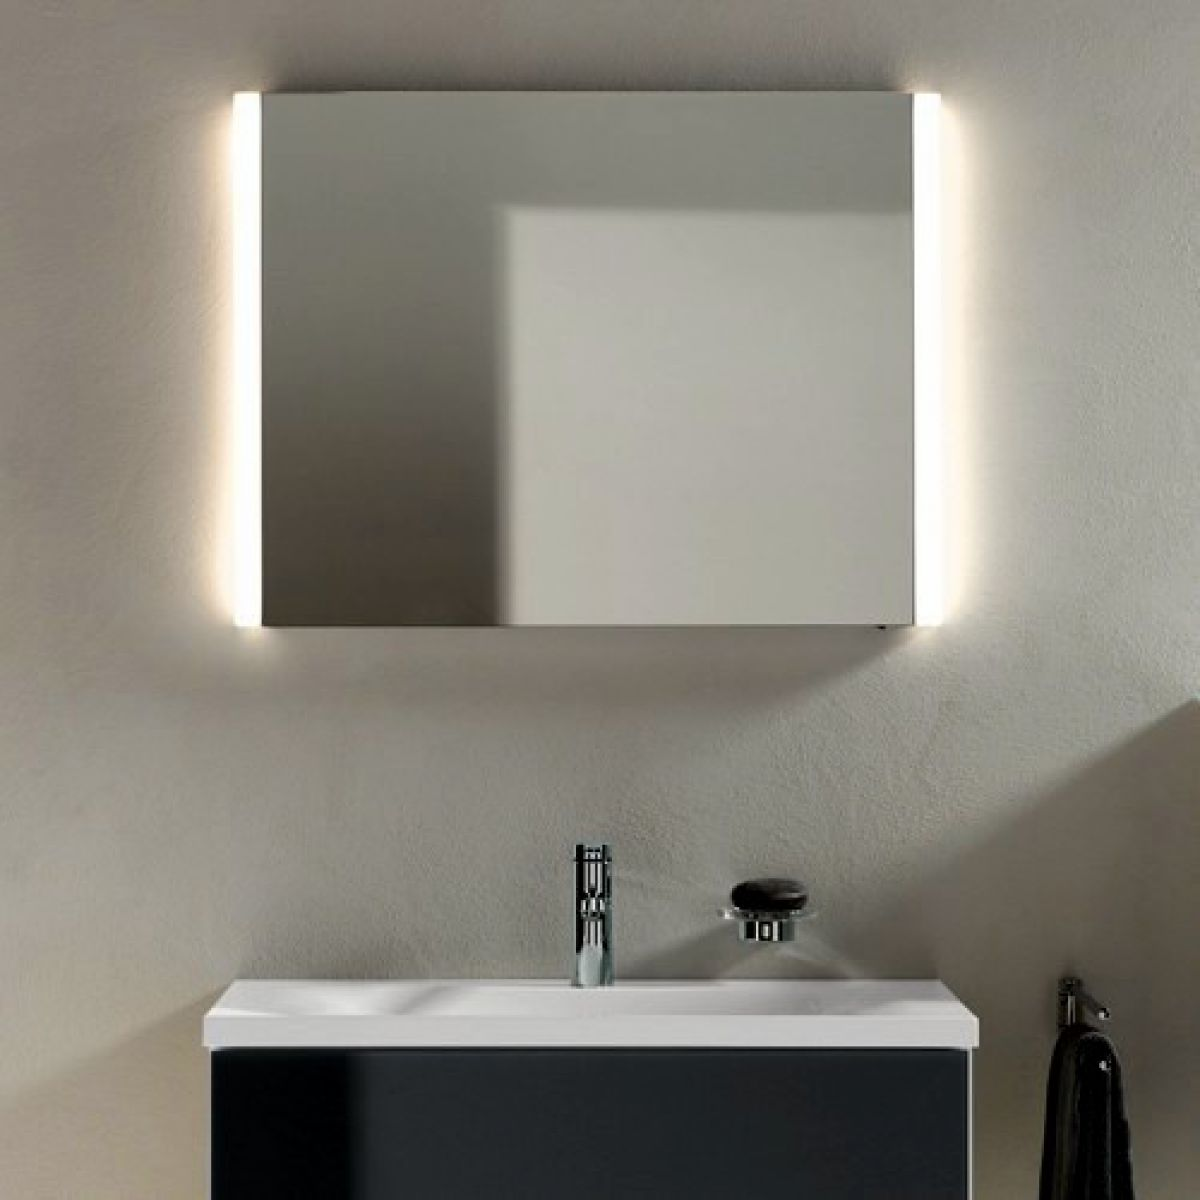 keuco elegance illuminated bathroom mirror uk bathrooms